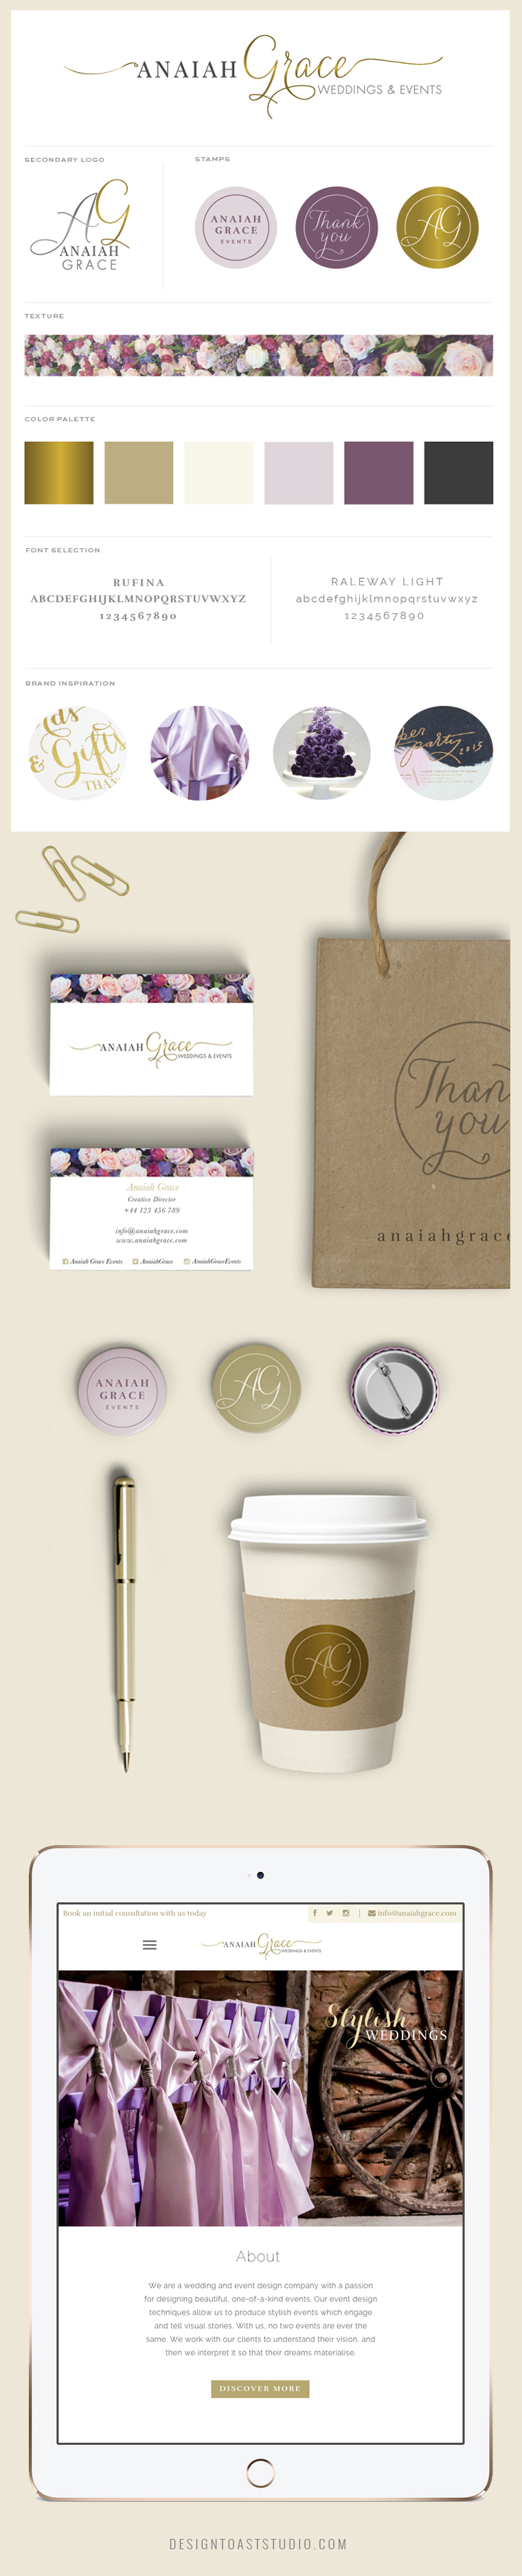 Anaiah Grace Event Design Event Planning Branding + Web Design Stationary Floral Feminine Lettering Brand